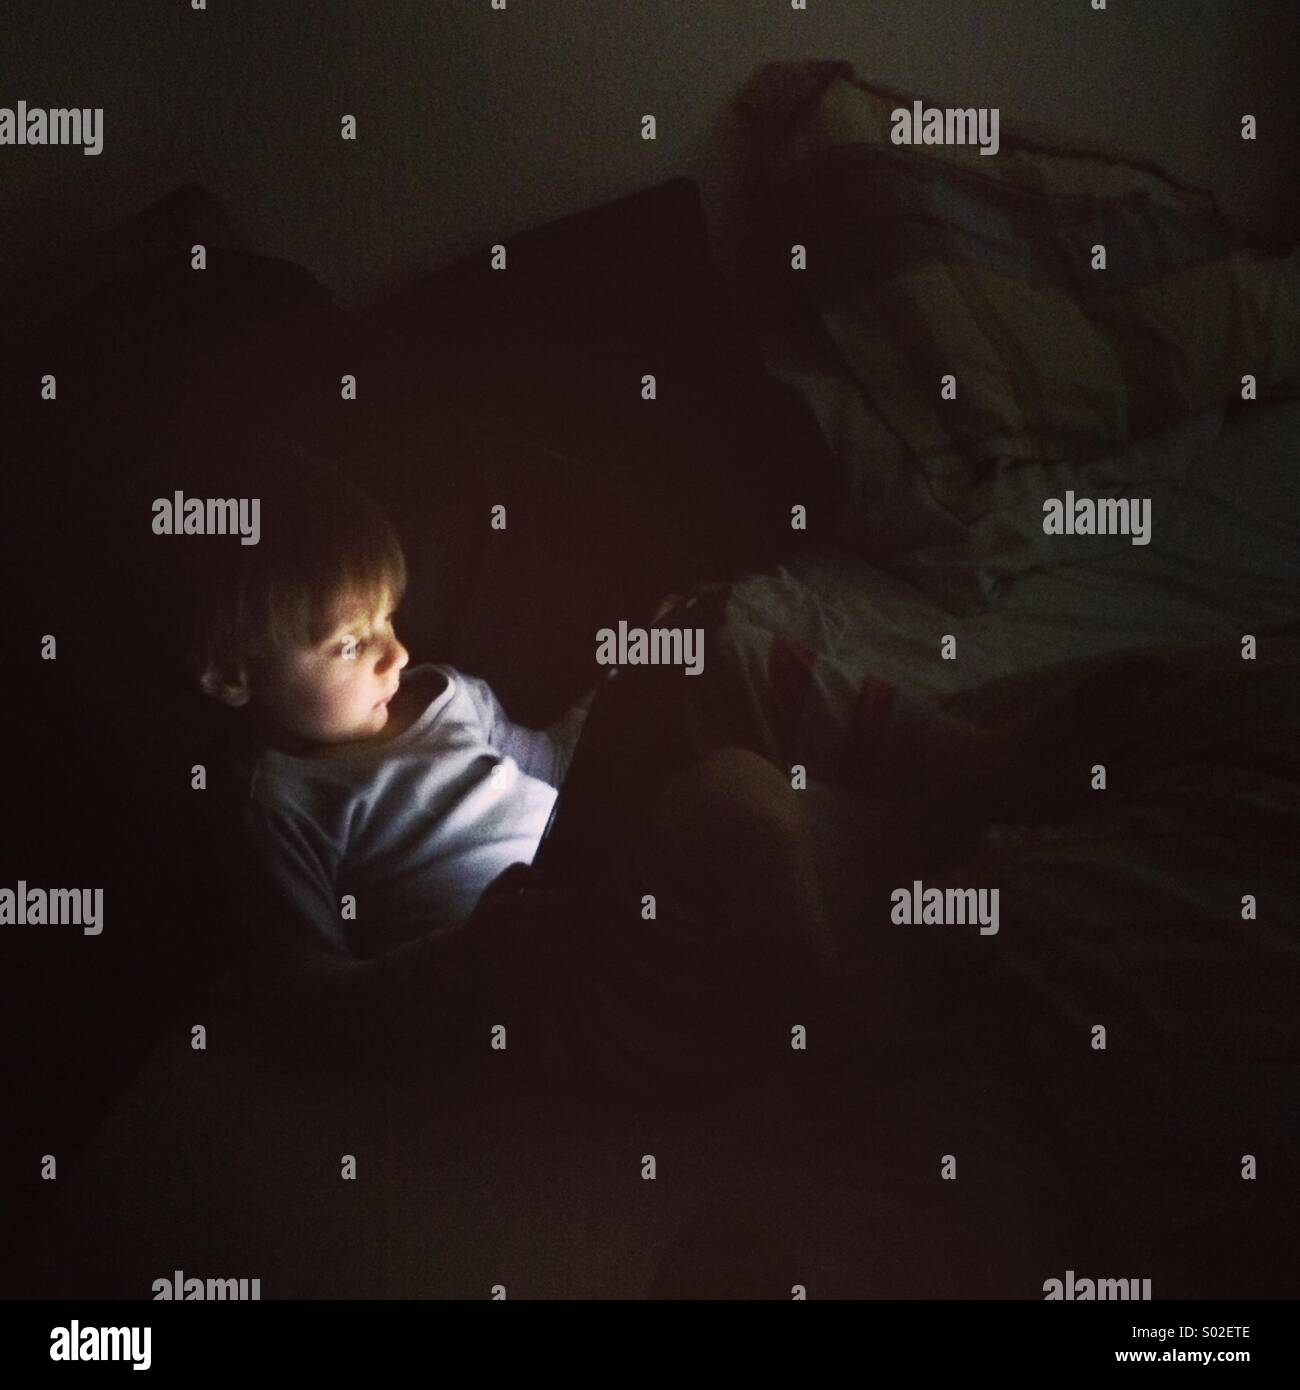 Screen Time. - Stock Image